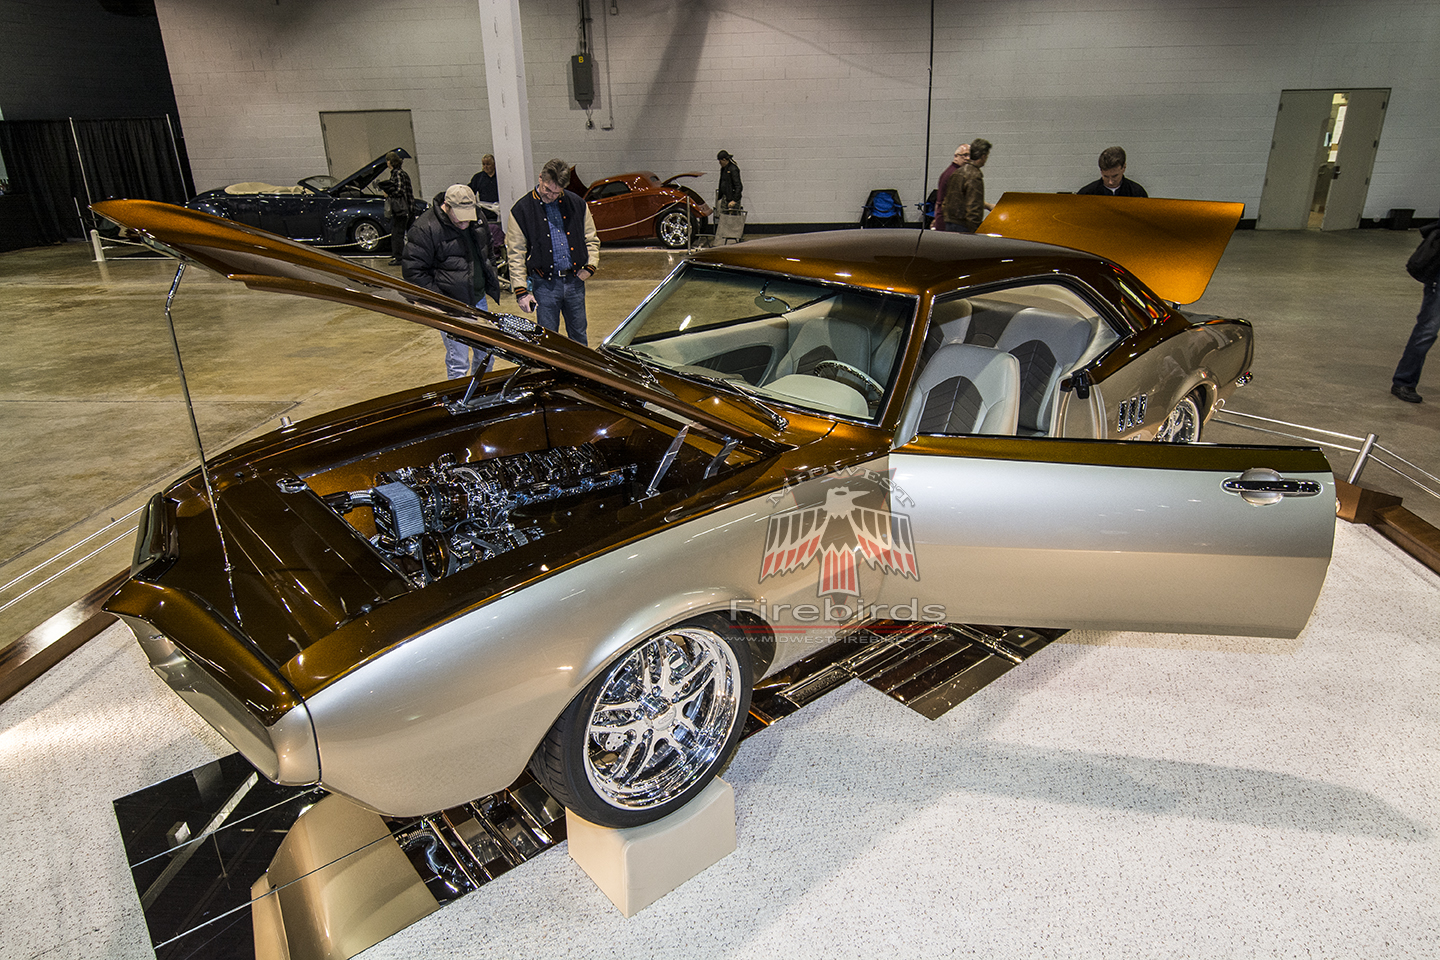 This custom 1967 Pontiac Firebird was displayed at the 2014 Chicago World of Wheels car show.